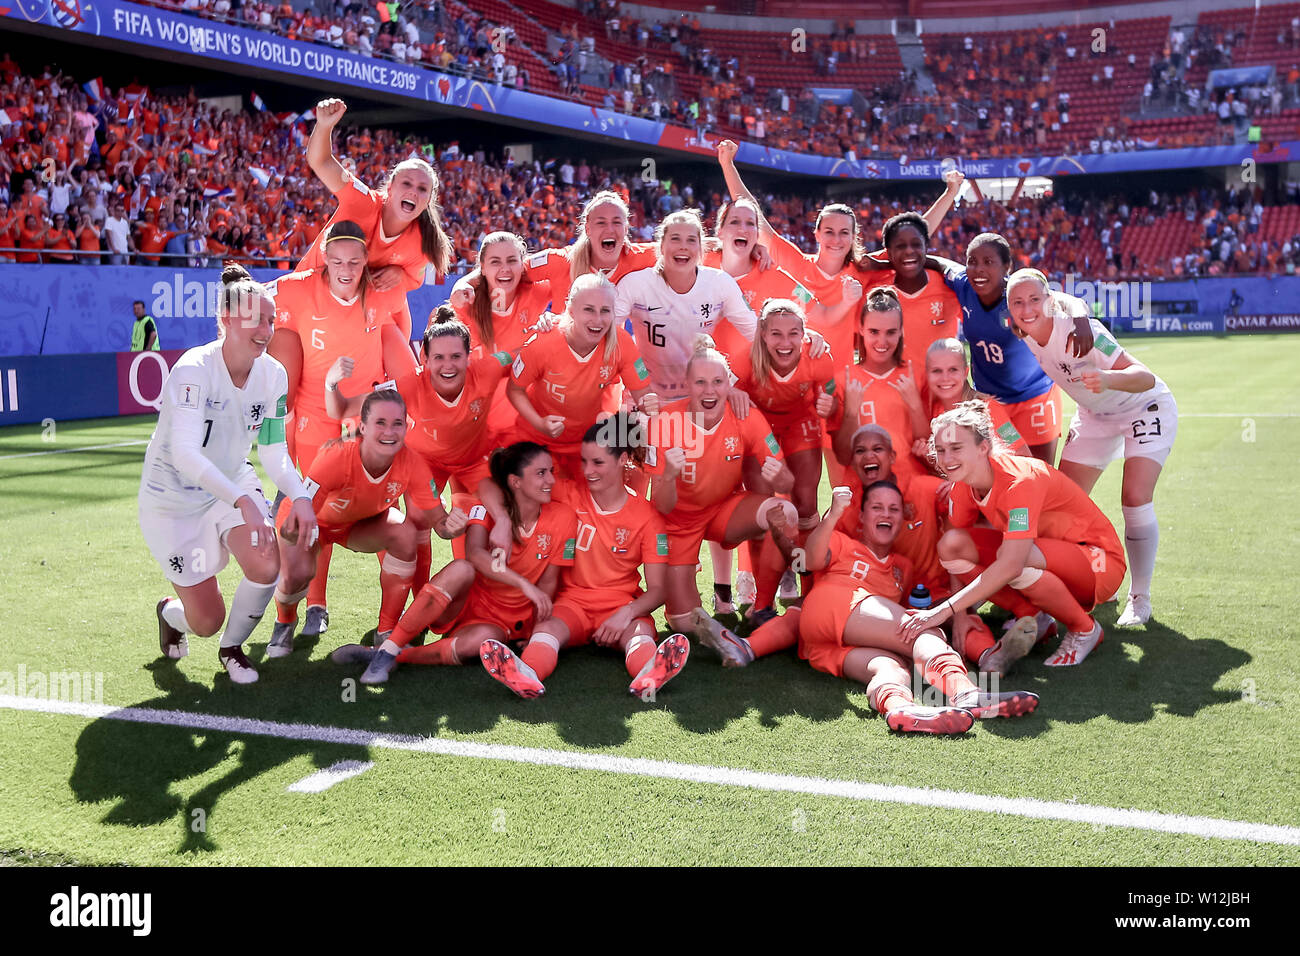 Valenciennes, France. 29th June, 2019. VALENCIENNES, 29-06-2019, Stade du Hainaut, World championship 2019, Italy - Netherlands (women), celebrating the victory after the game Credit: Pro Shots/Alamy Live News Stock Photo